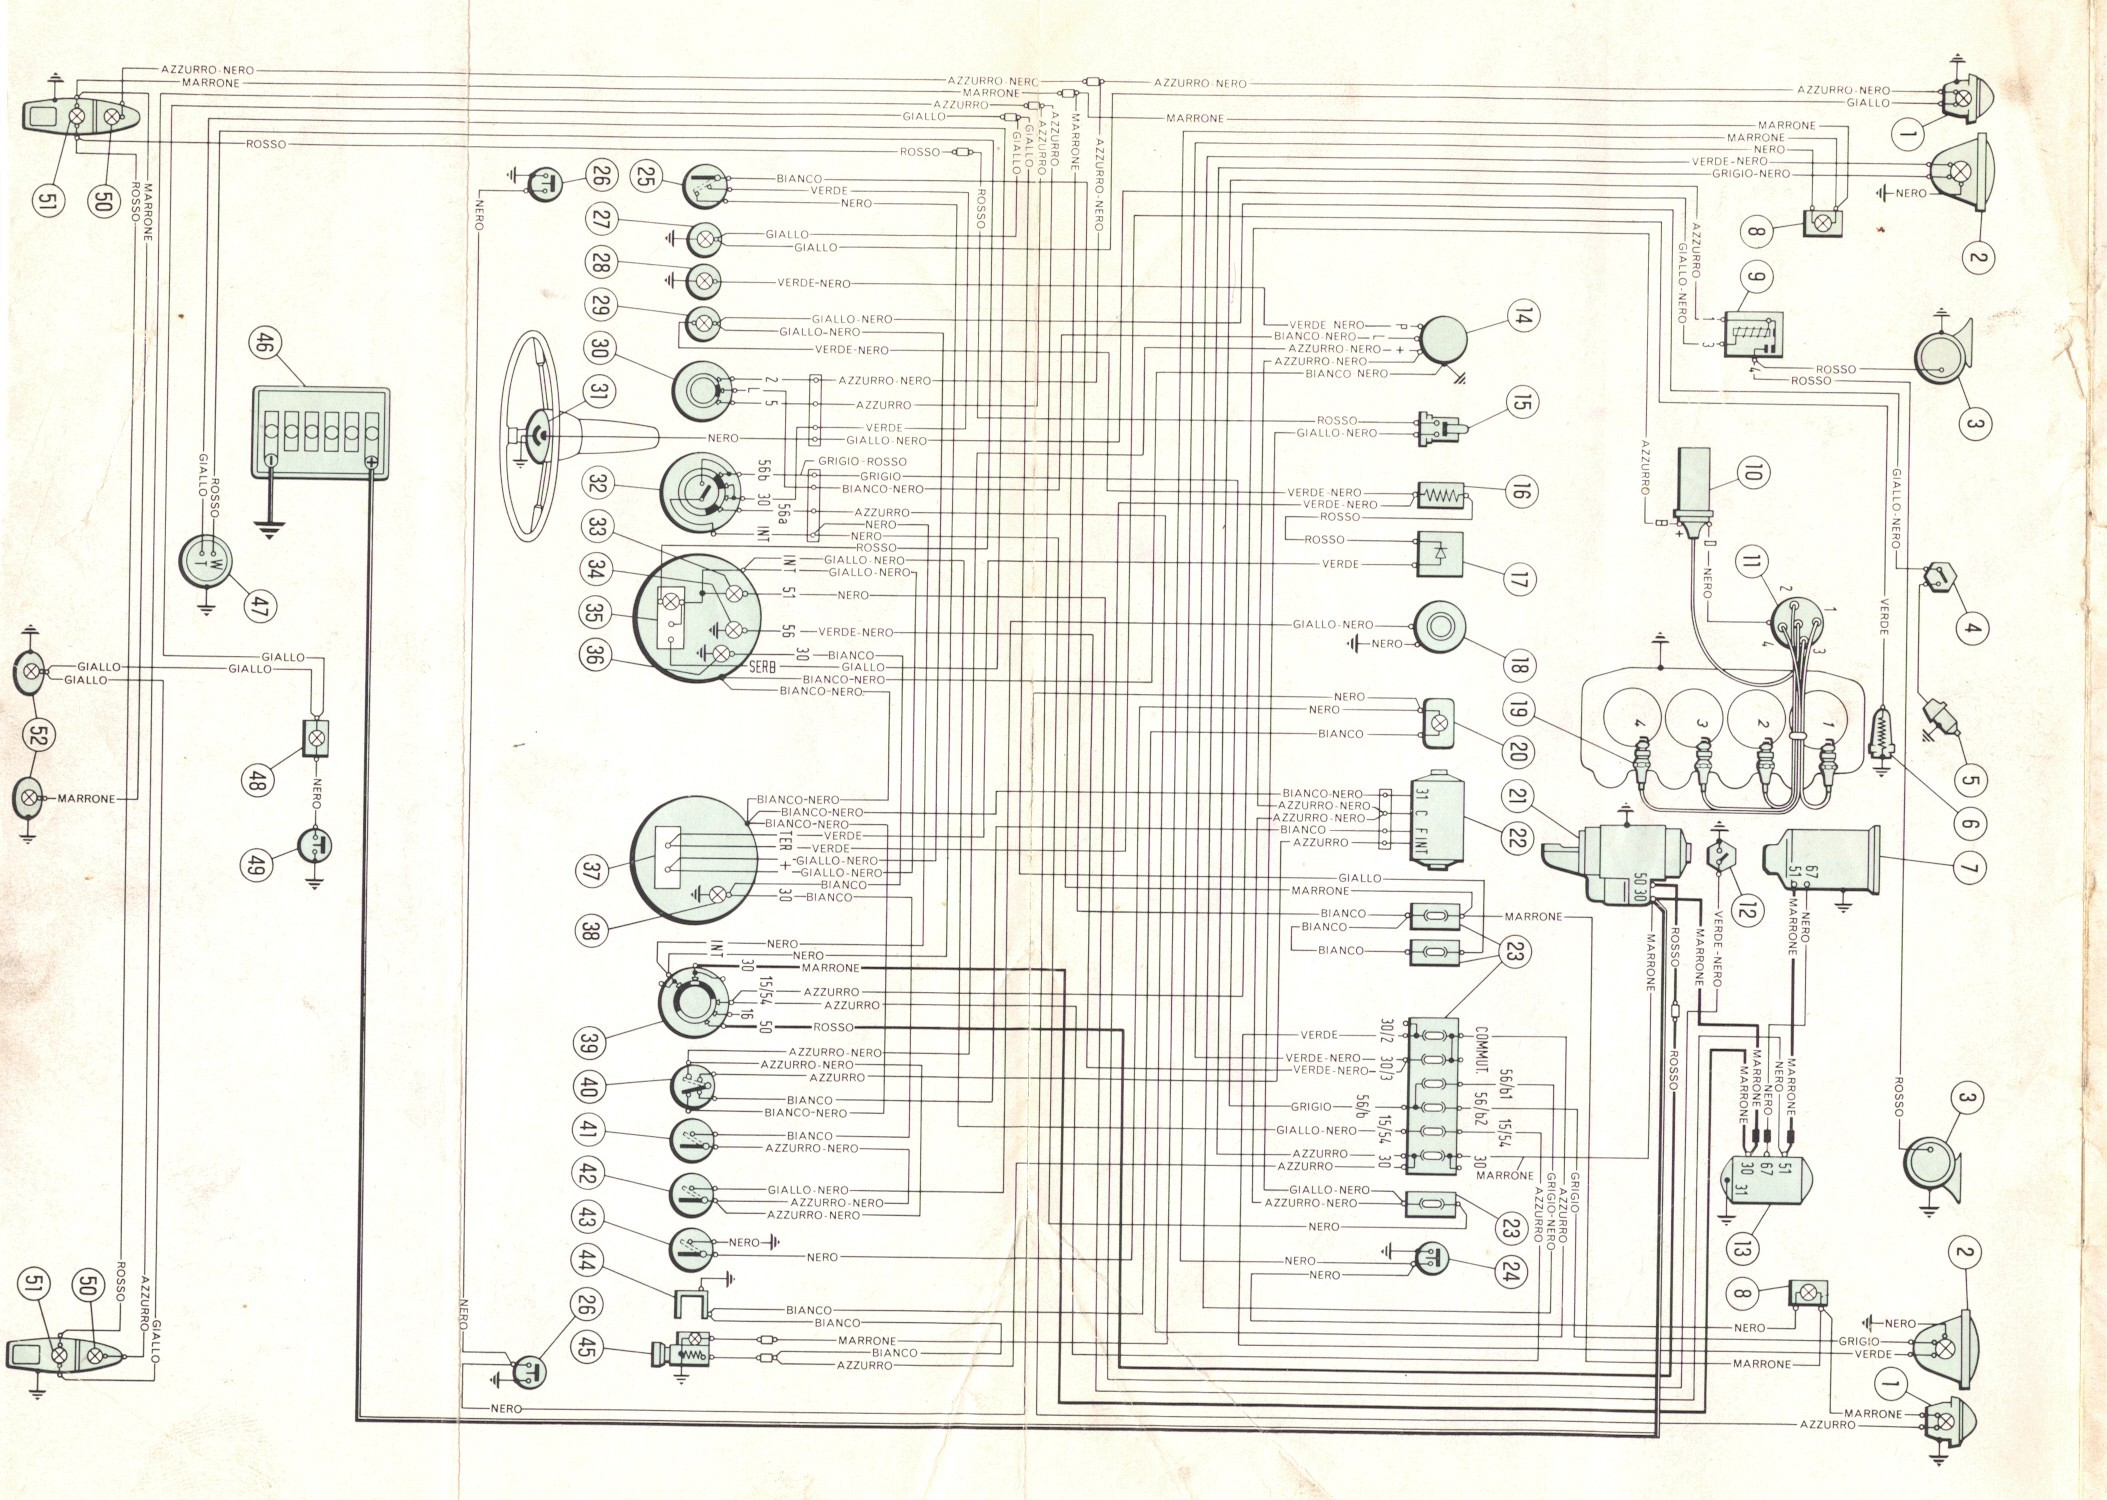 fiat wiring diagrams electrical drawing wiring diagram \u2022 challenger wiring diagram wiring diagram for 1973 fiat 128 trusted wiring diagram u2022 rh govjobs co fiat doblo wiring diagrams fiat wiring diagram download